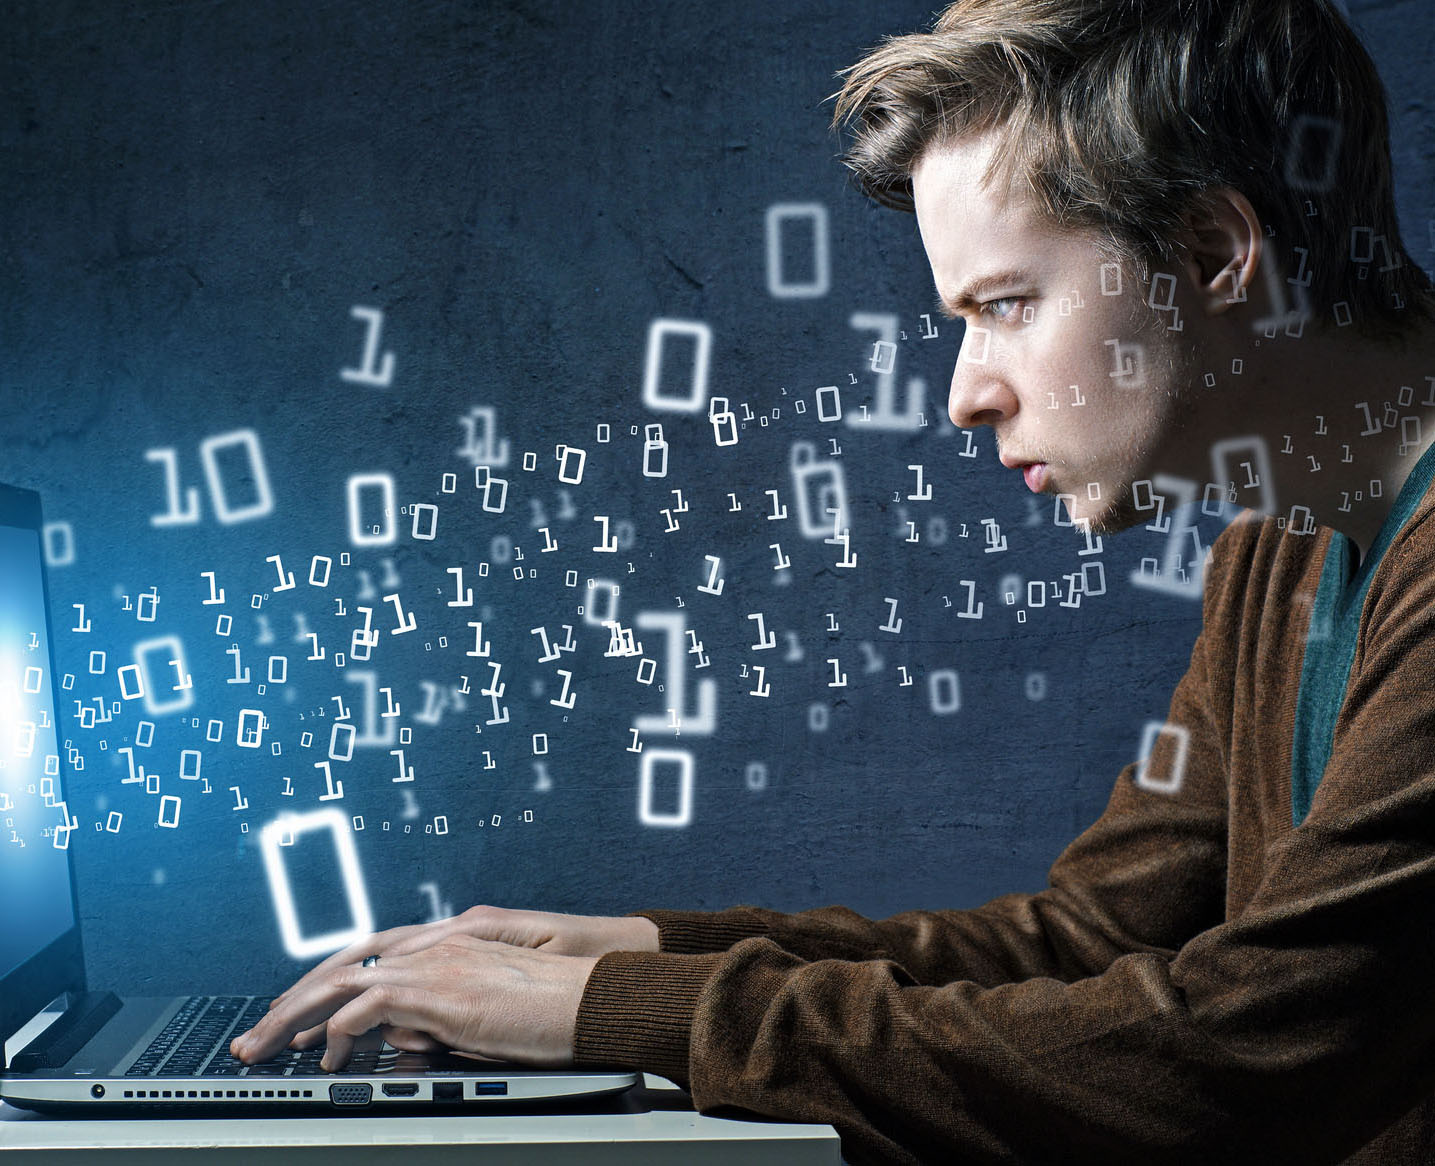 a focus on the career of a software programmer